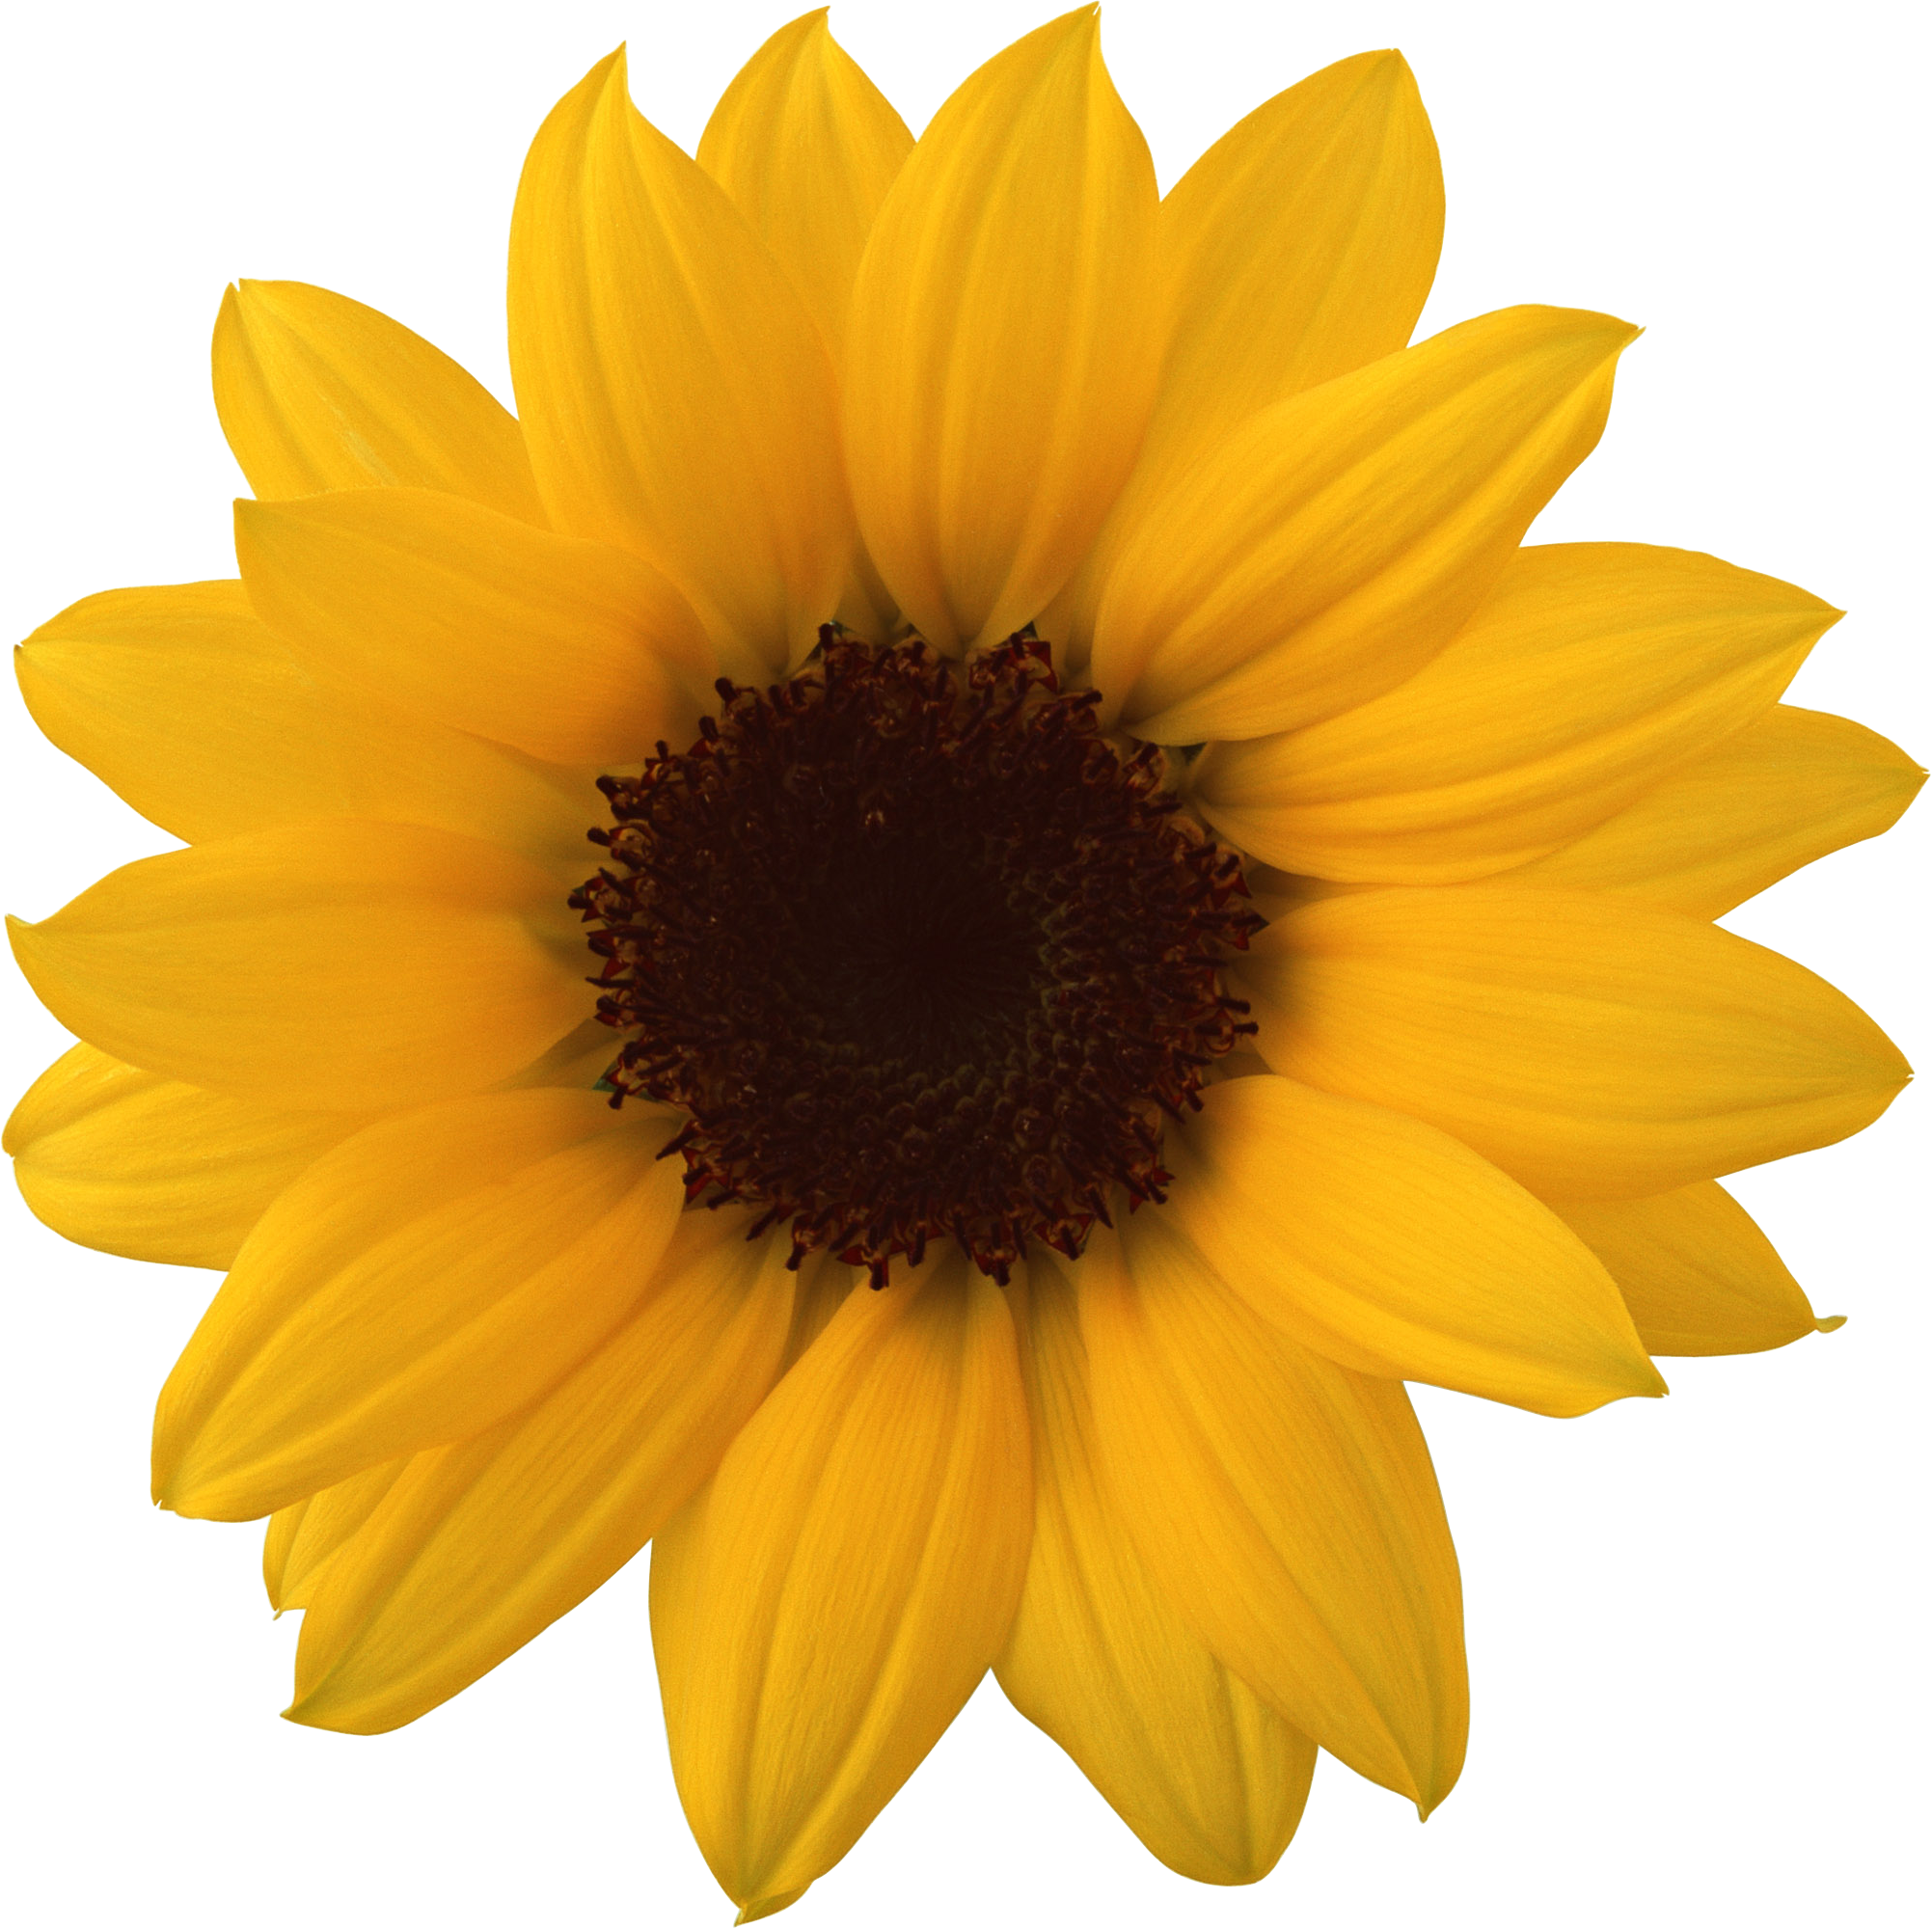 Sun flower clipart image royalty free Realistic Sunflower Clipart | jokingart.com Sunflower Clipart image royalty free